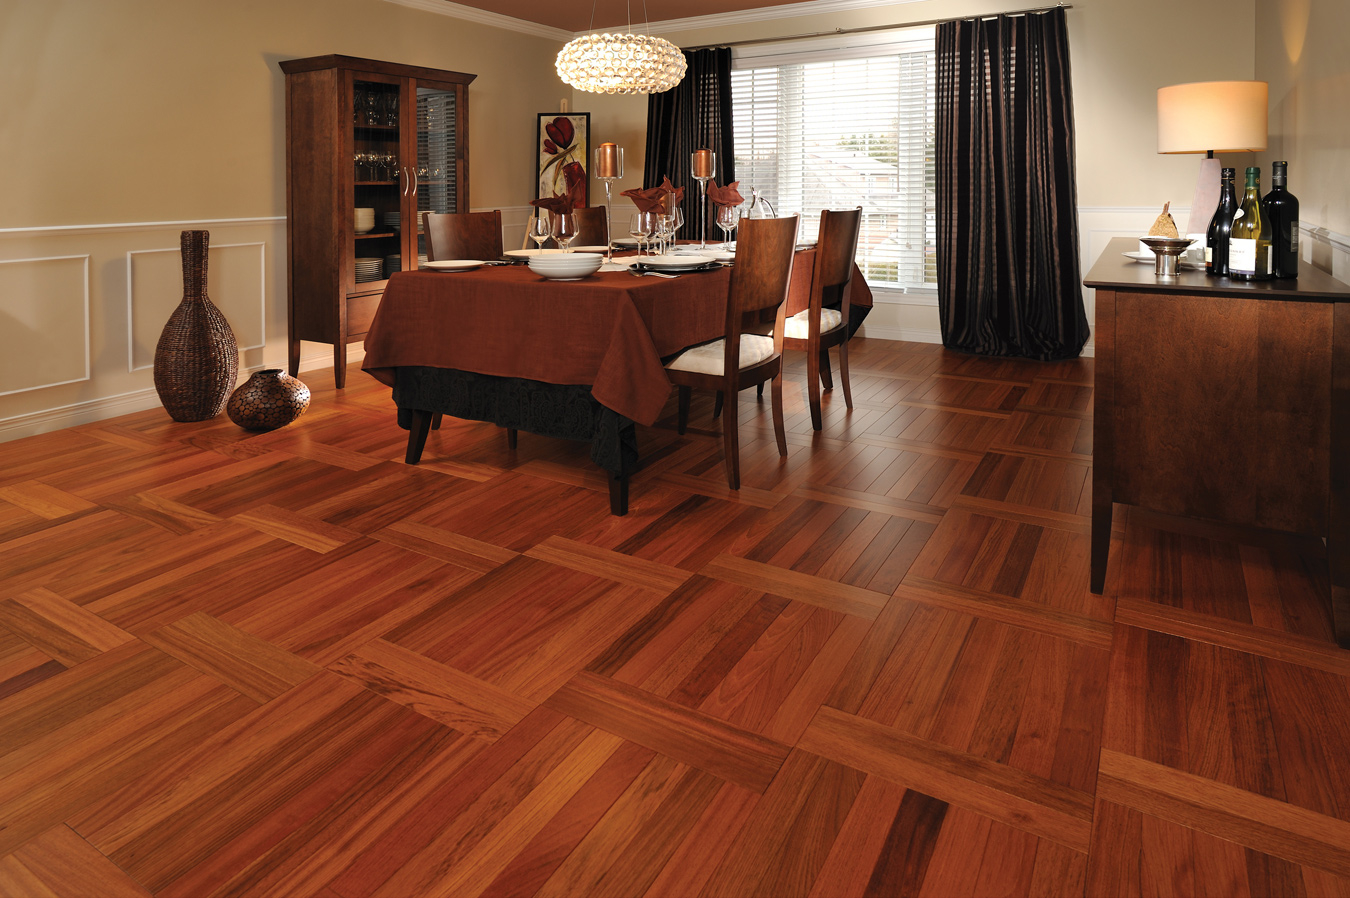 Shaw Floors Laminate | Costco Carpet | Costco Wood Flooring